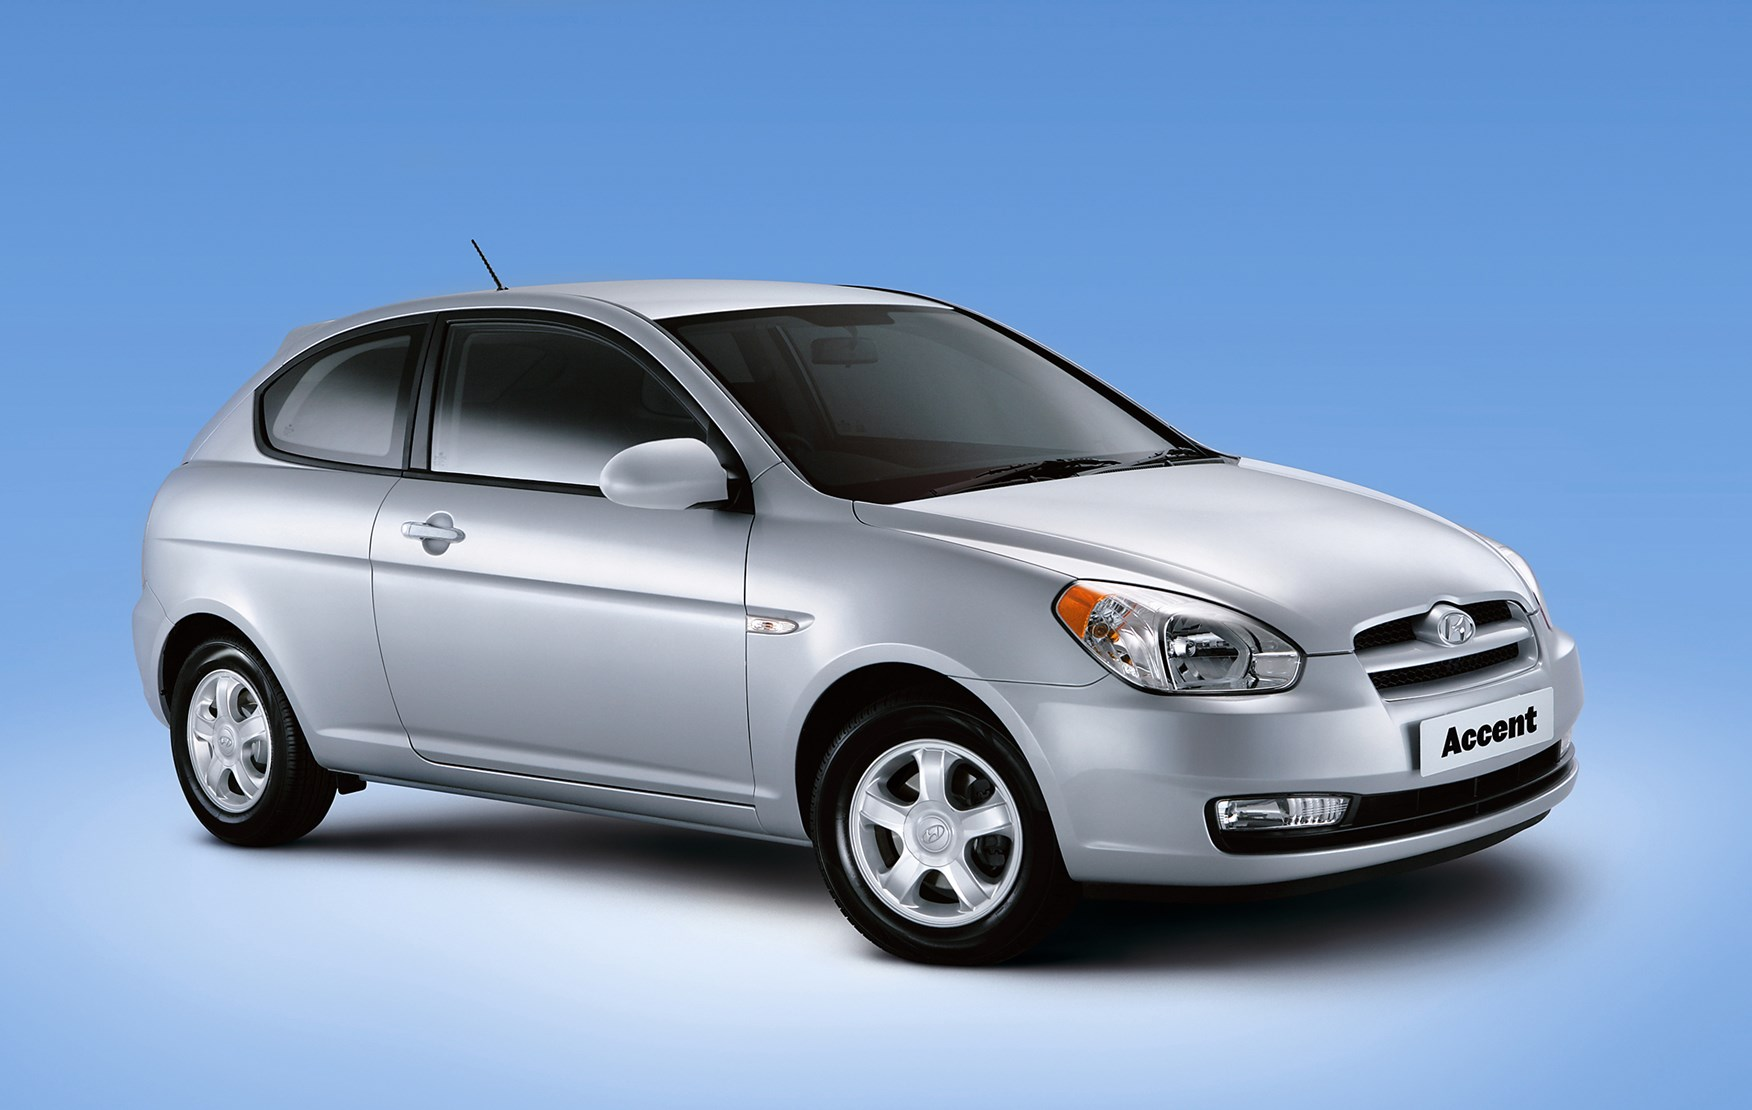 hyundai accent hatchback review 2006 2009 parkers. Black Bedroom Furniture Sets. Home Design Ideas